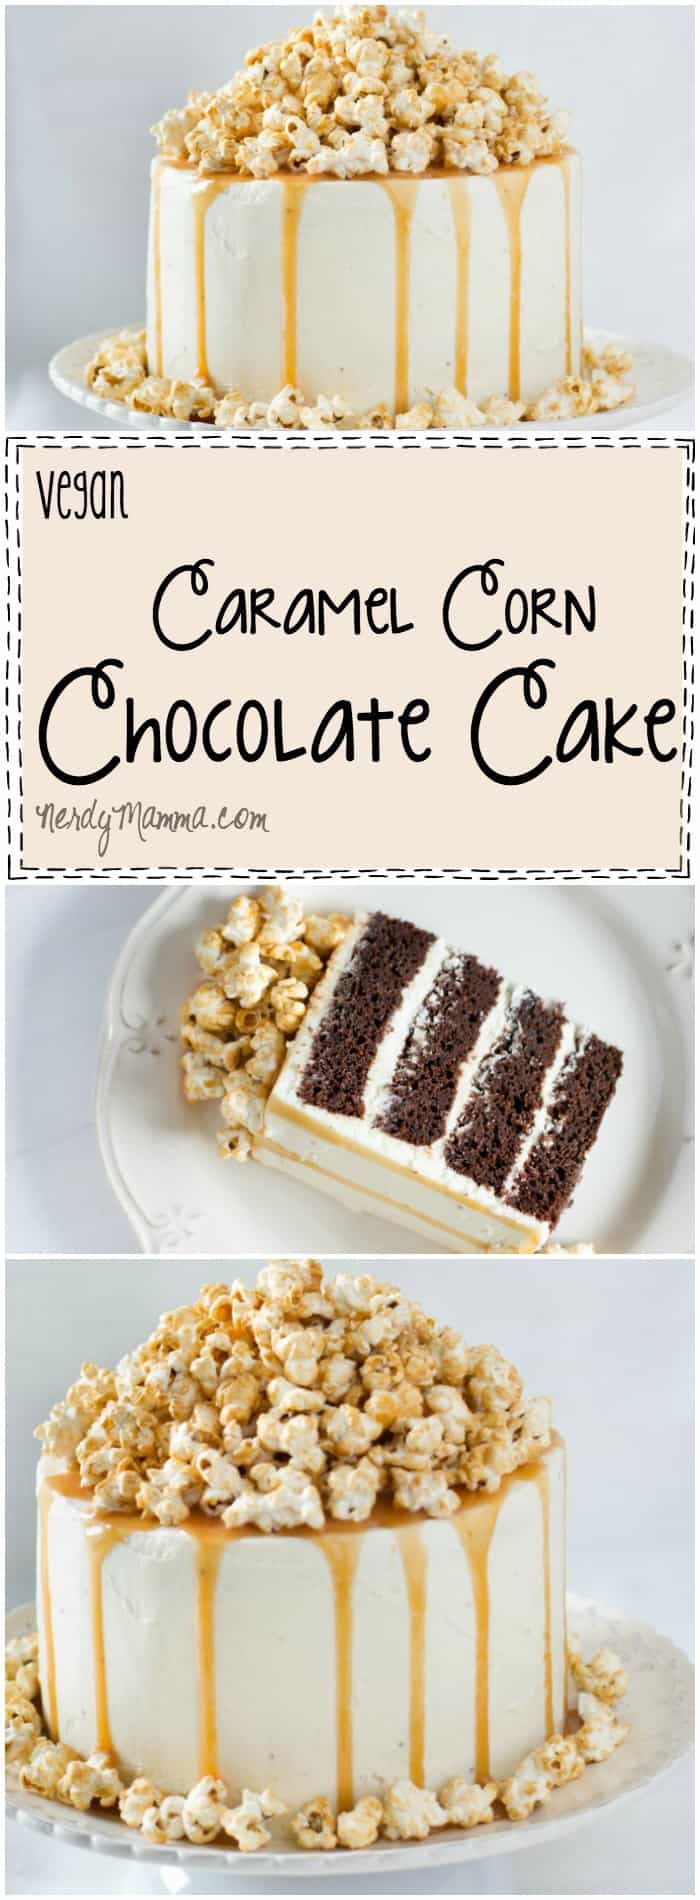 Gluten And Corn Free Chocolate Cake